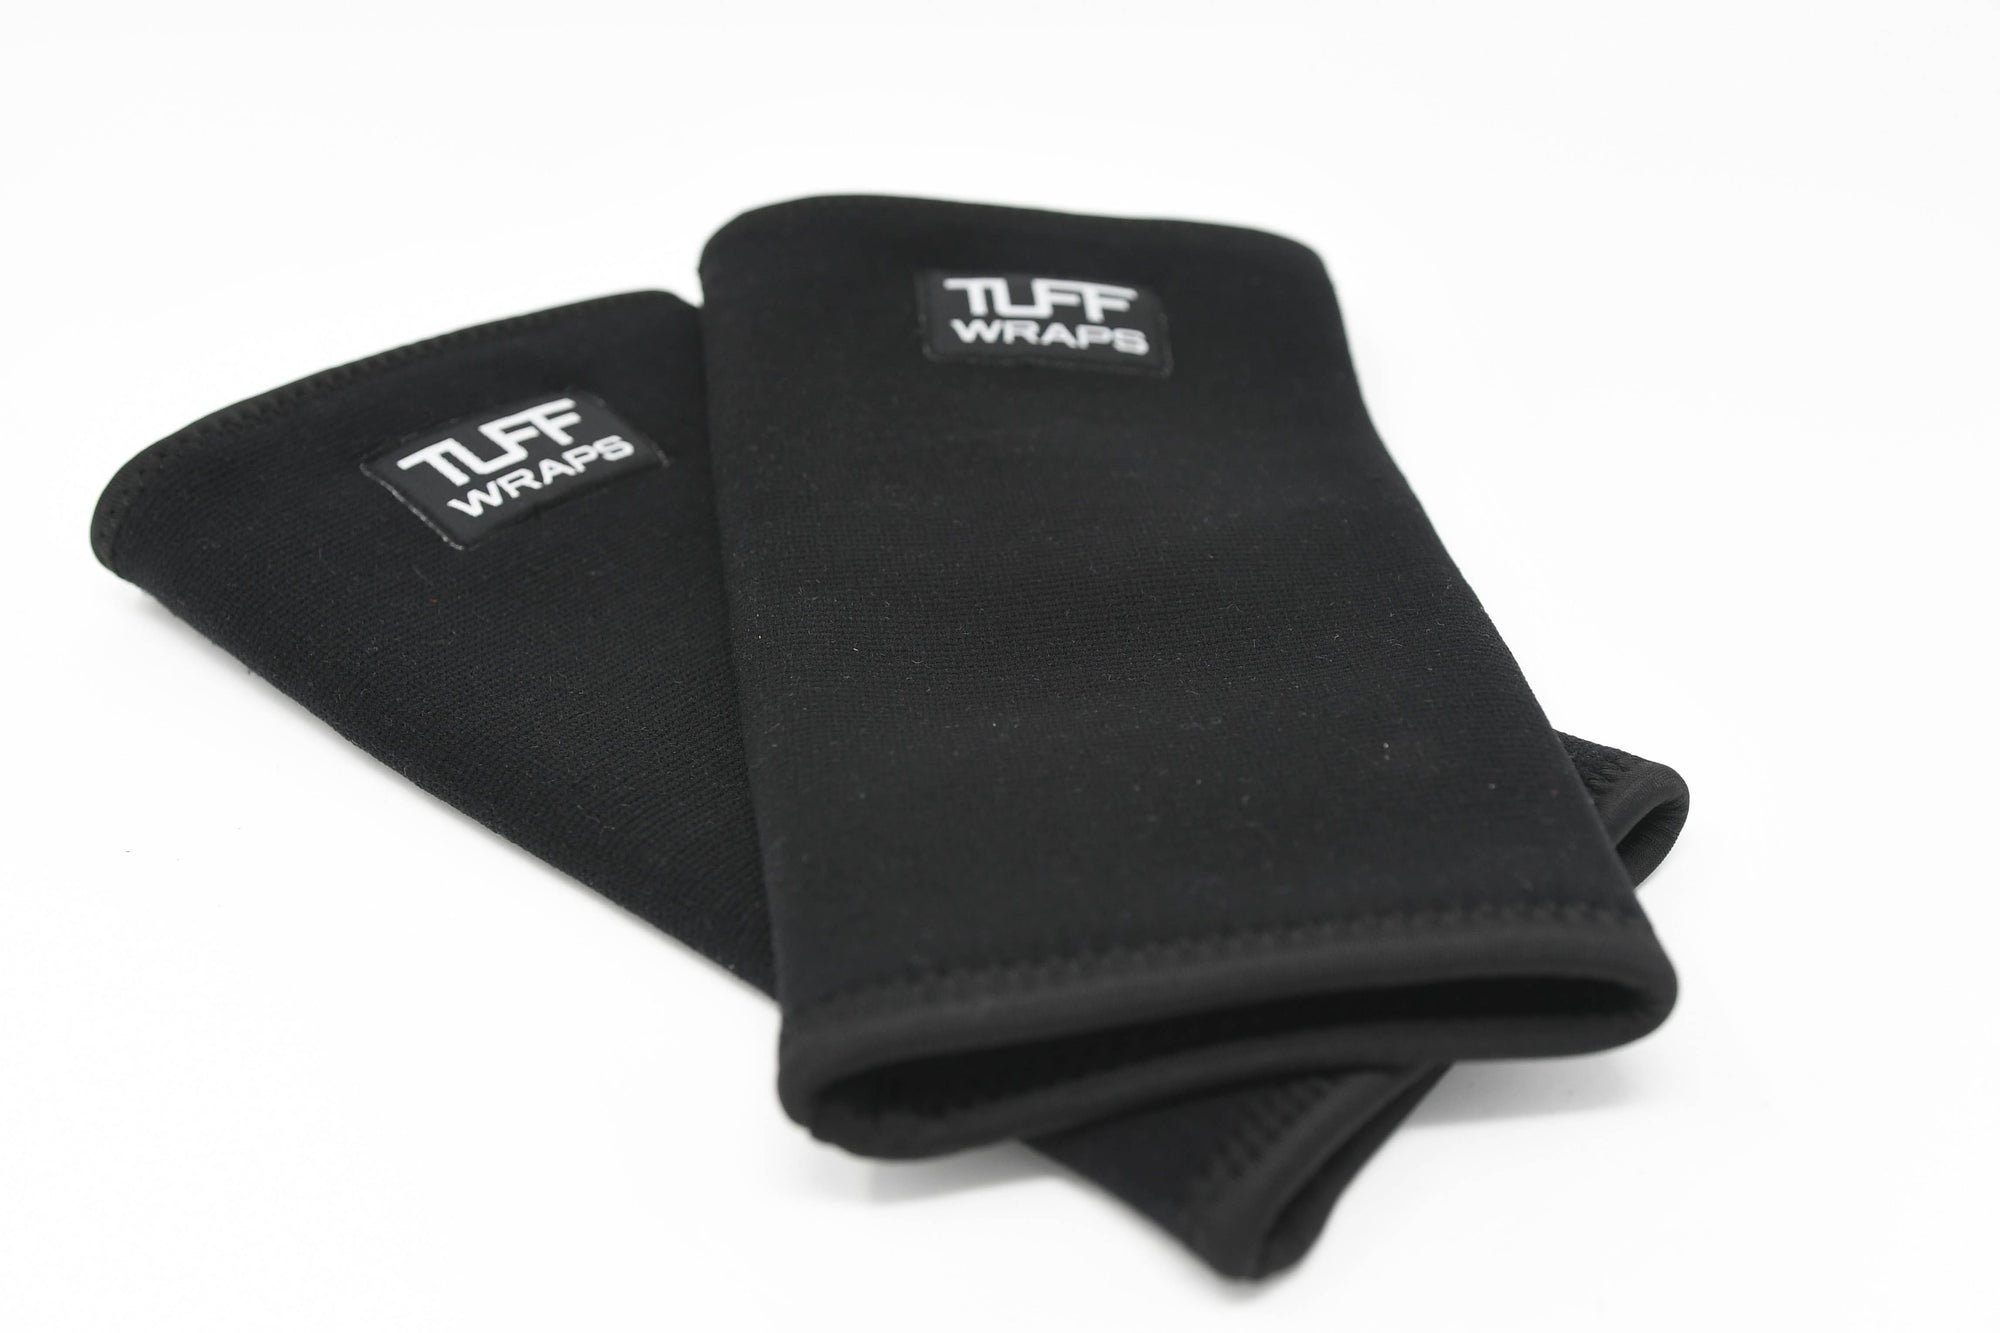 Tuff dual ply elbow sleeves